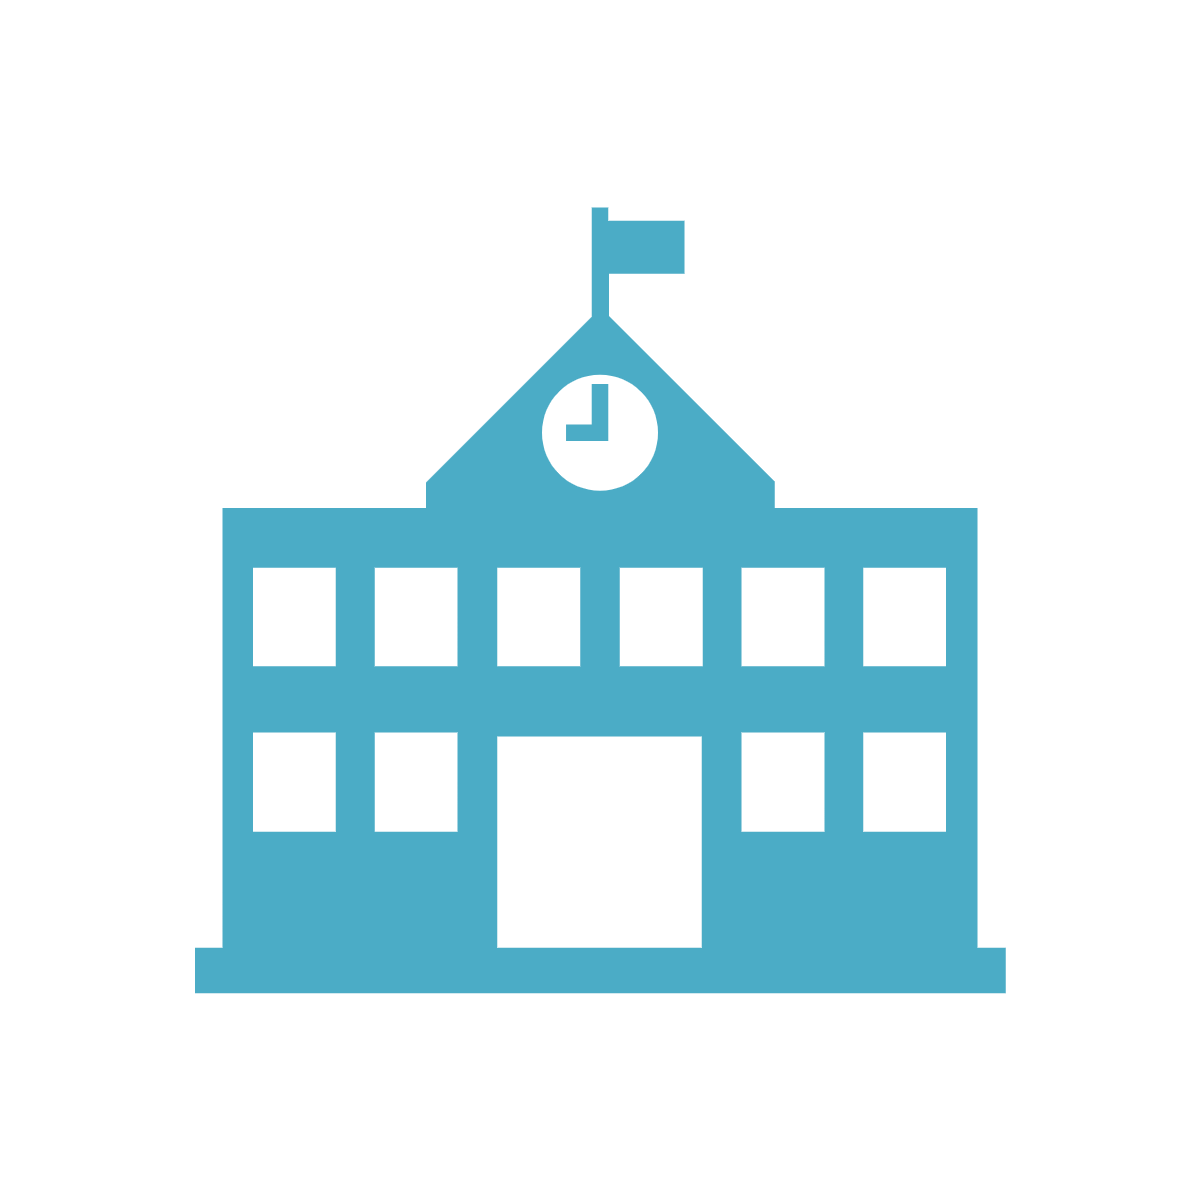 Teal green/blue icon of a schoolhouse